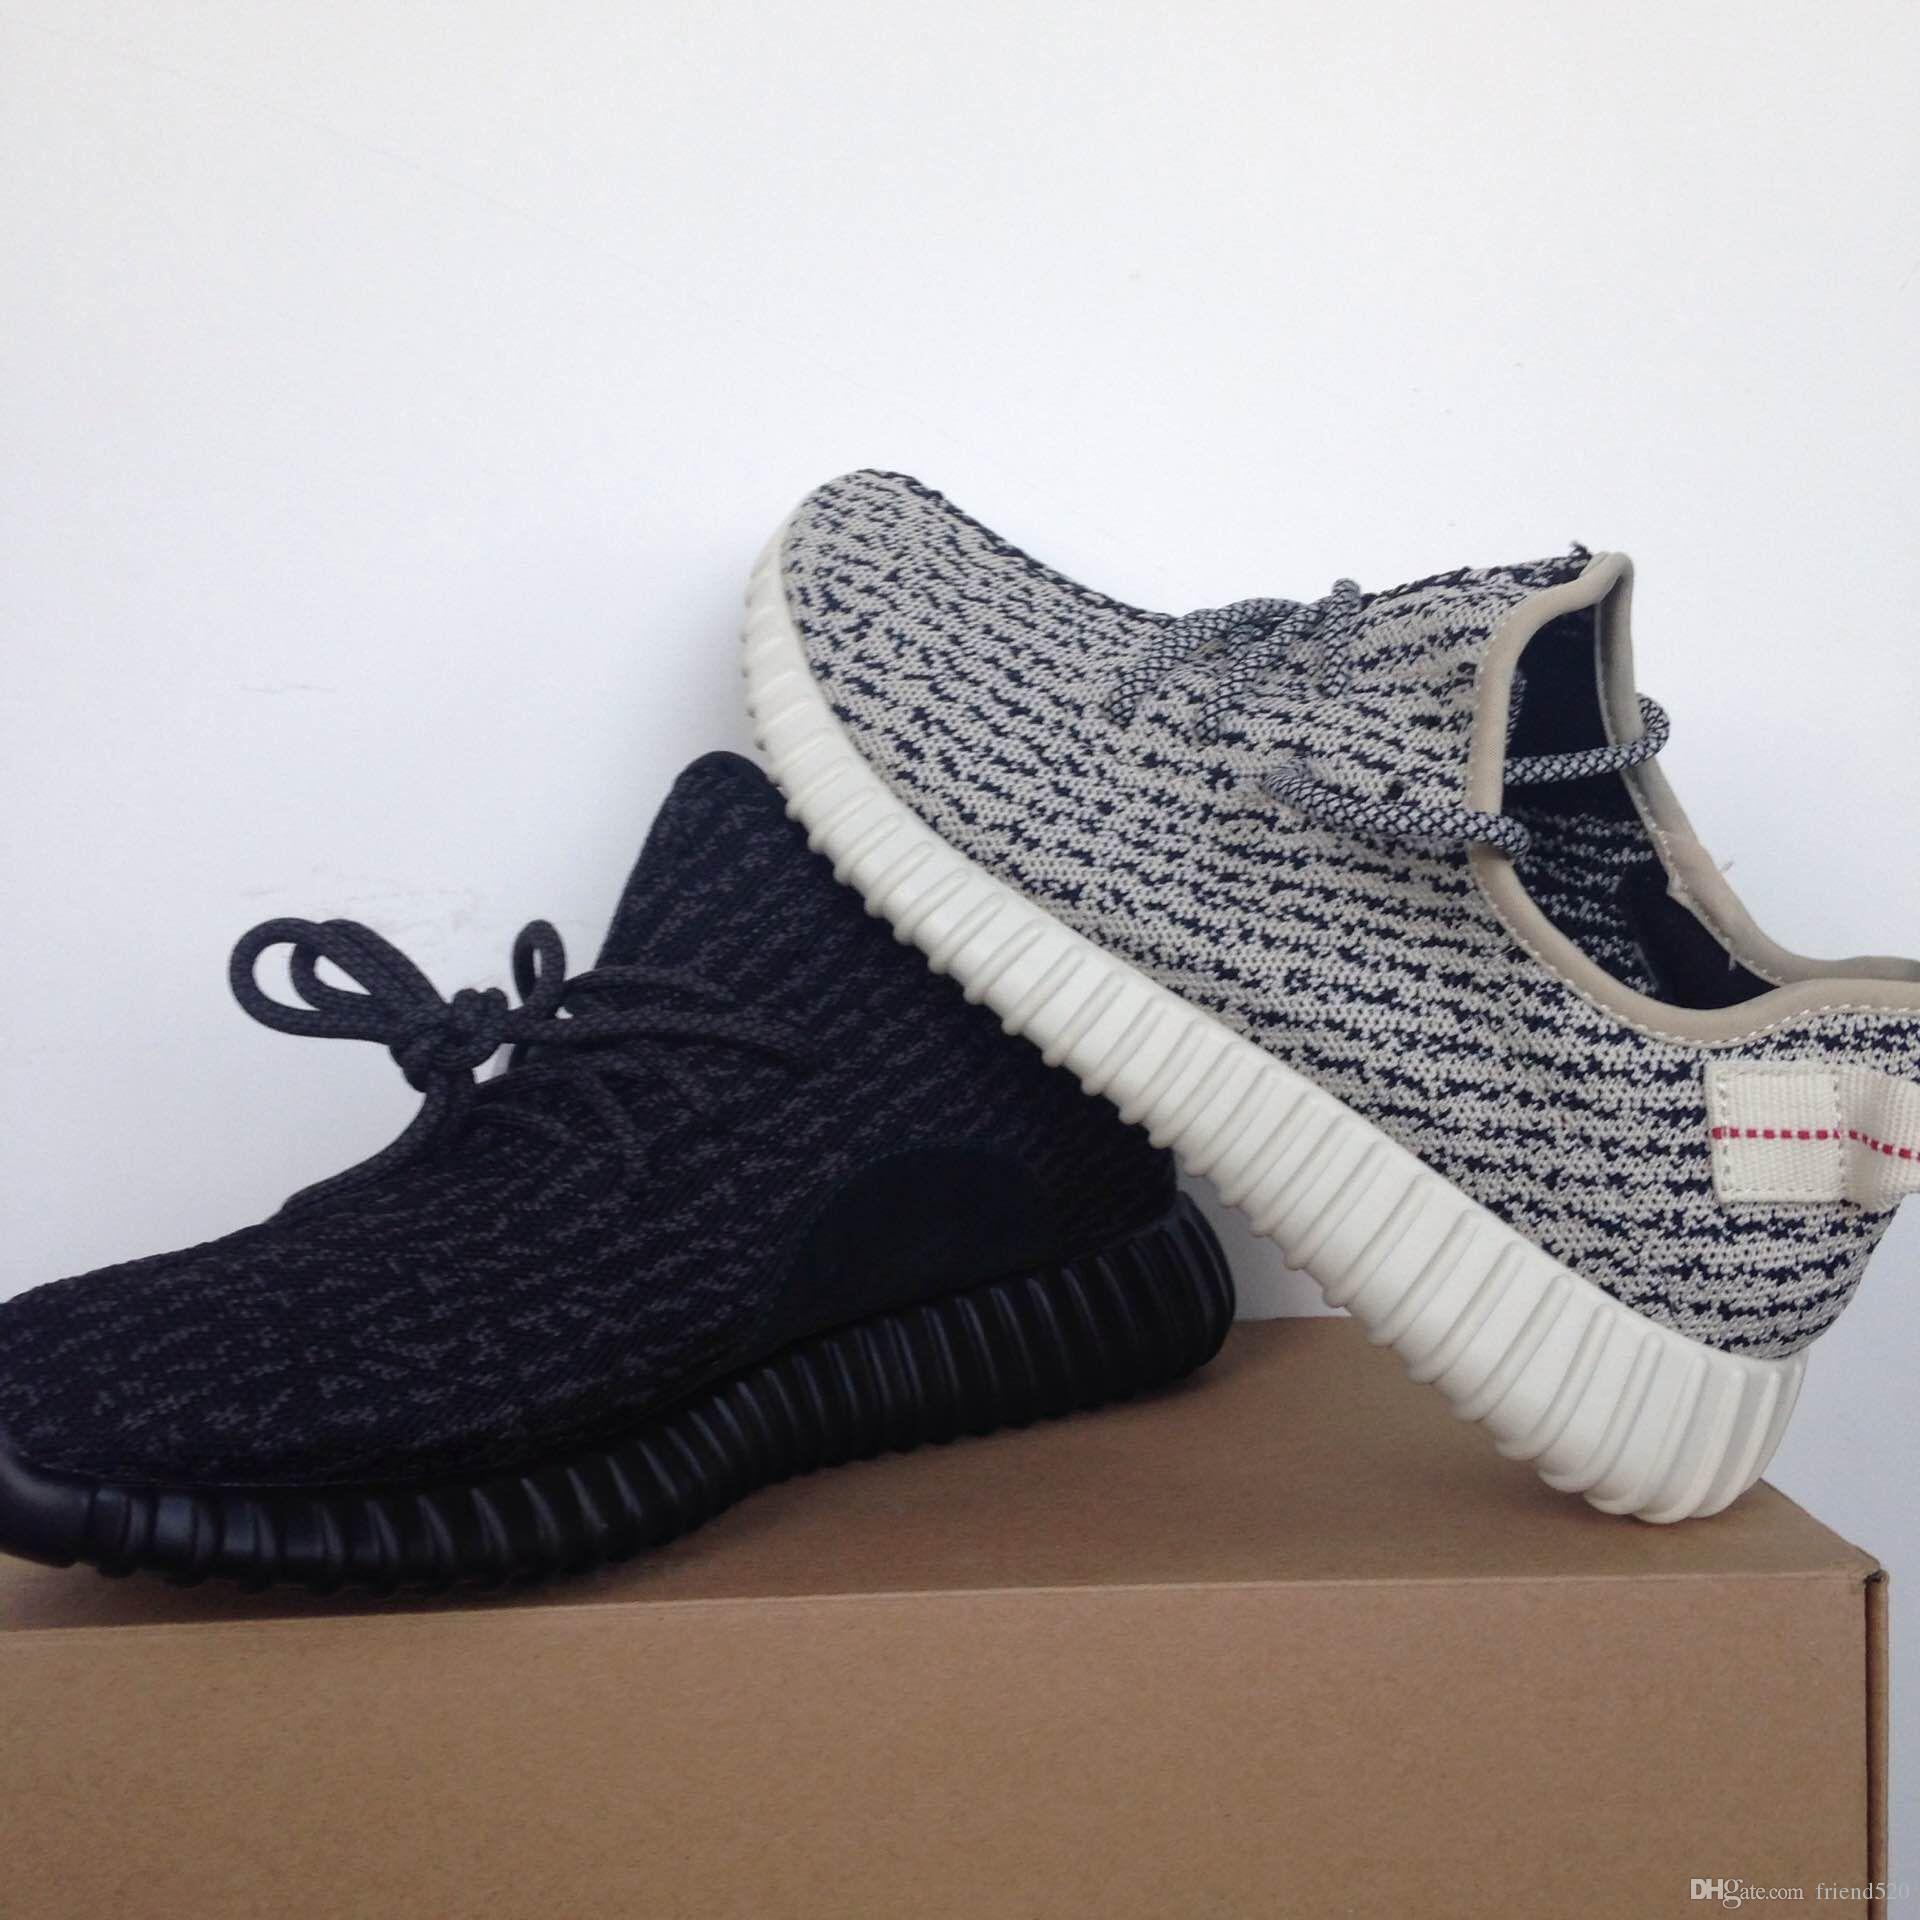 [ship With Box] Wholesale 2017 350 Shoes Pirate Black Moonrock Oxford Tan Turtle Dove Men Women Kanye West 350 Shoes clearance online amazon cheap footlocker sale with credit card 16a5n